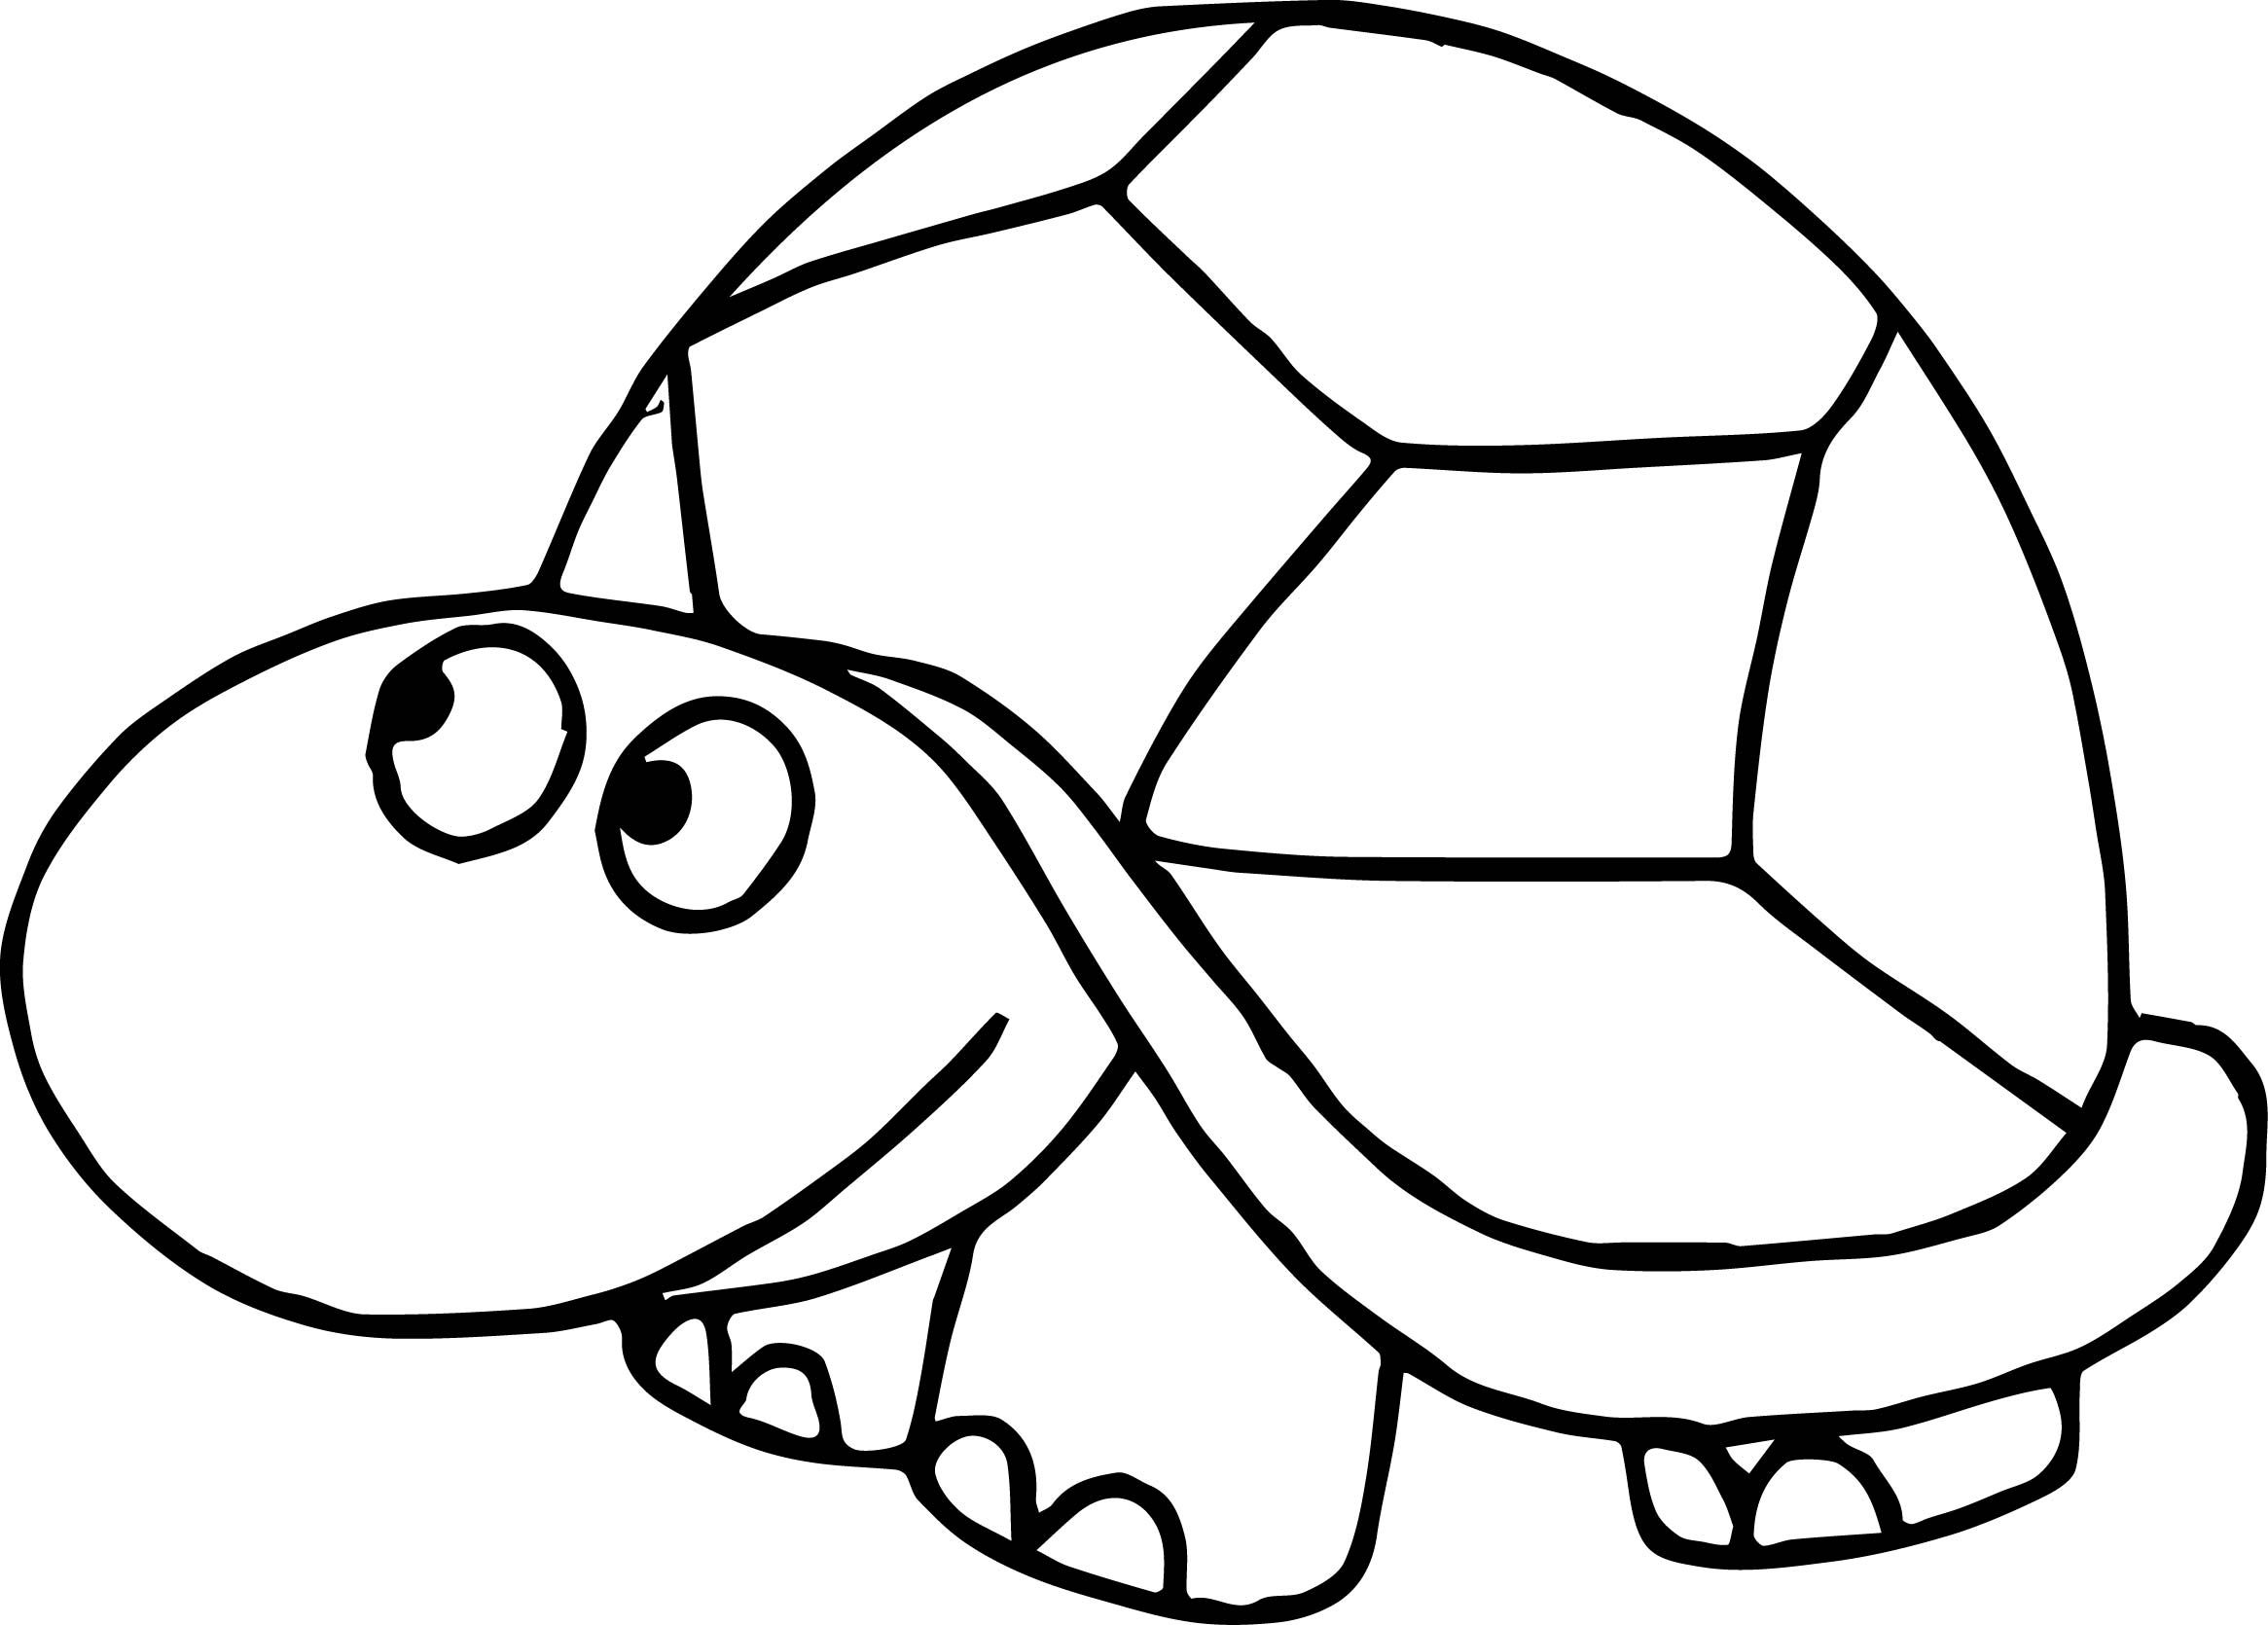 26+ Printable turtle coloring pictures ideas